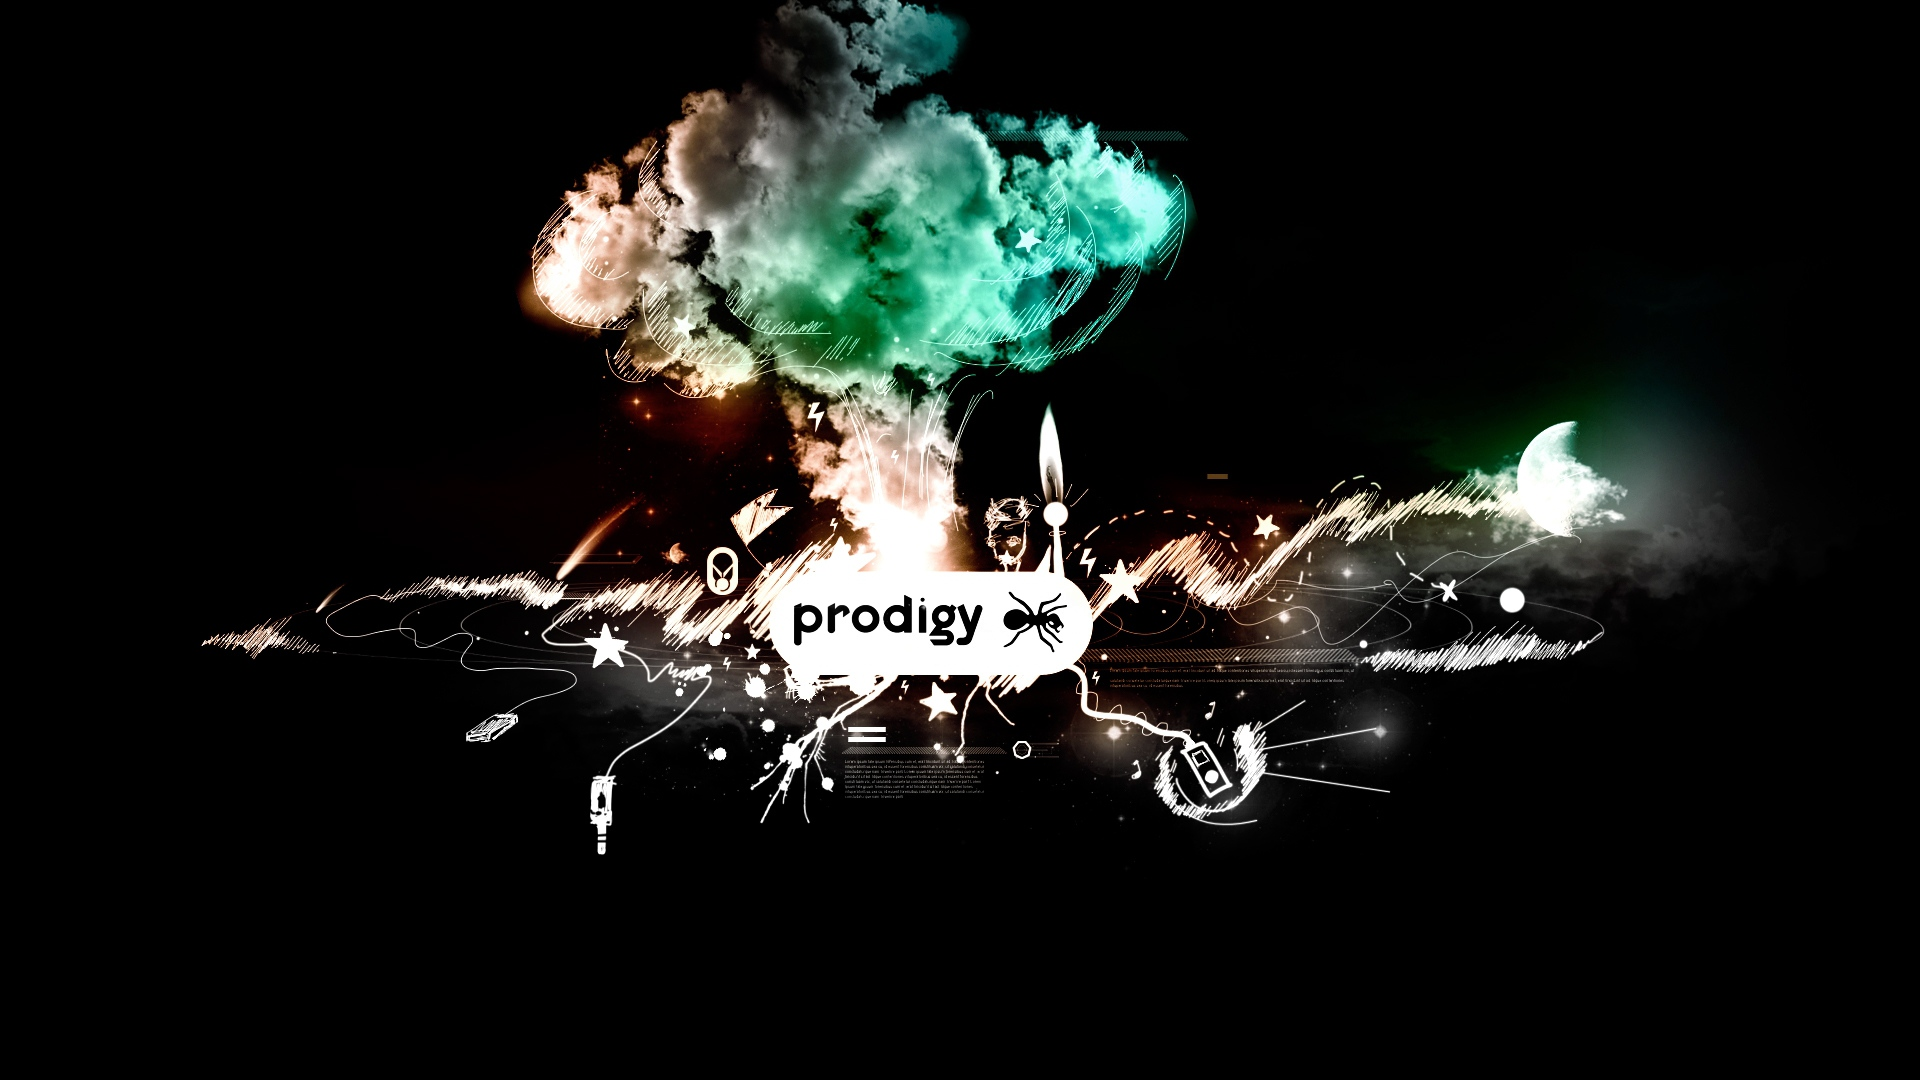 1920x1080 - Prodigy Wallpapers 16